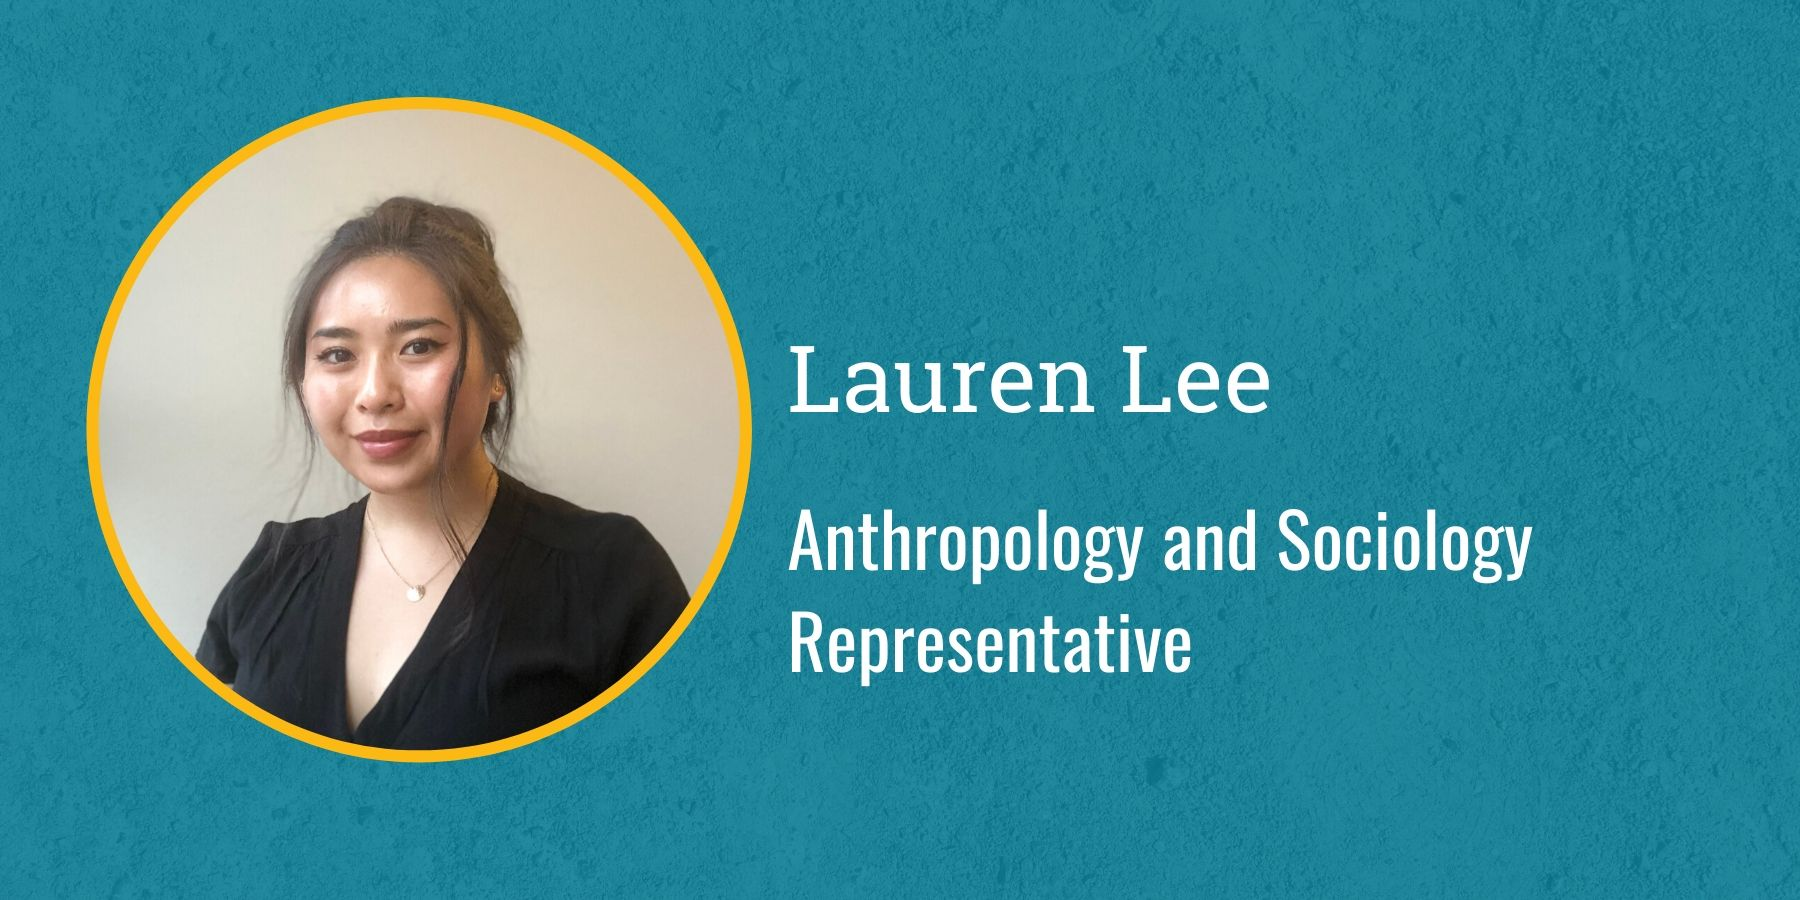 Photo of Lauren Lee and text: Anthropology and Sociology Representative